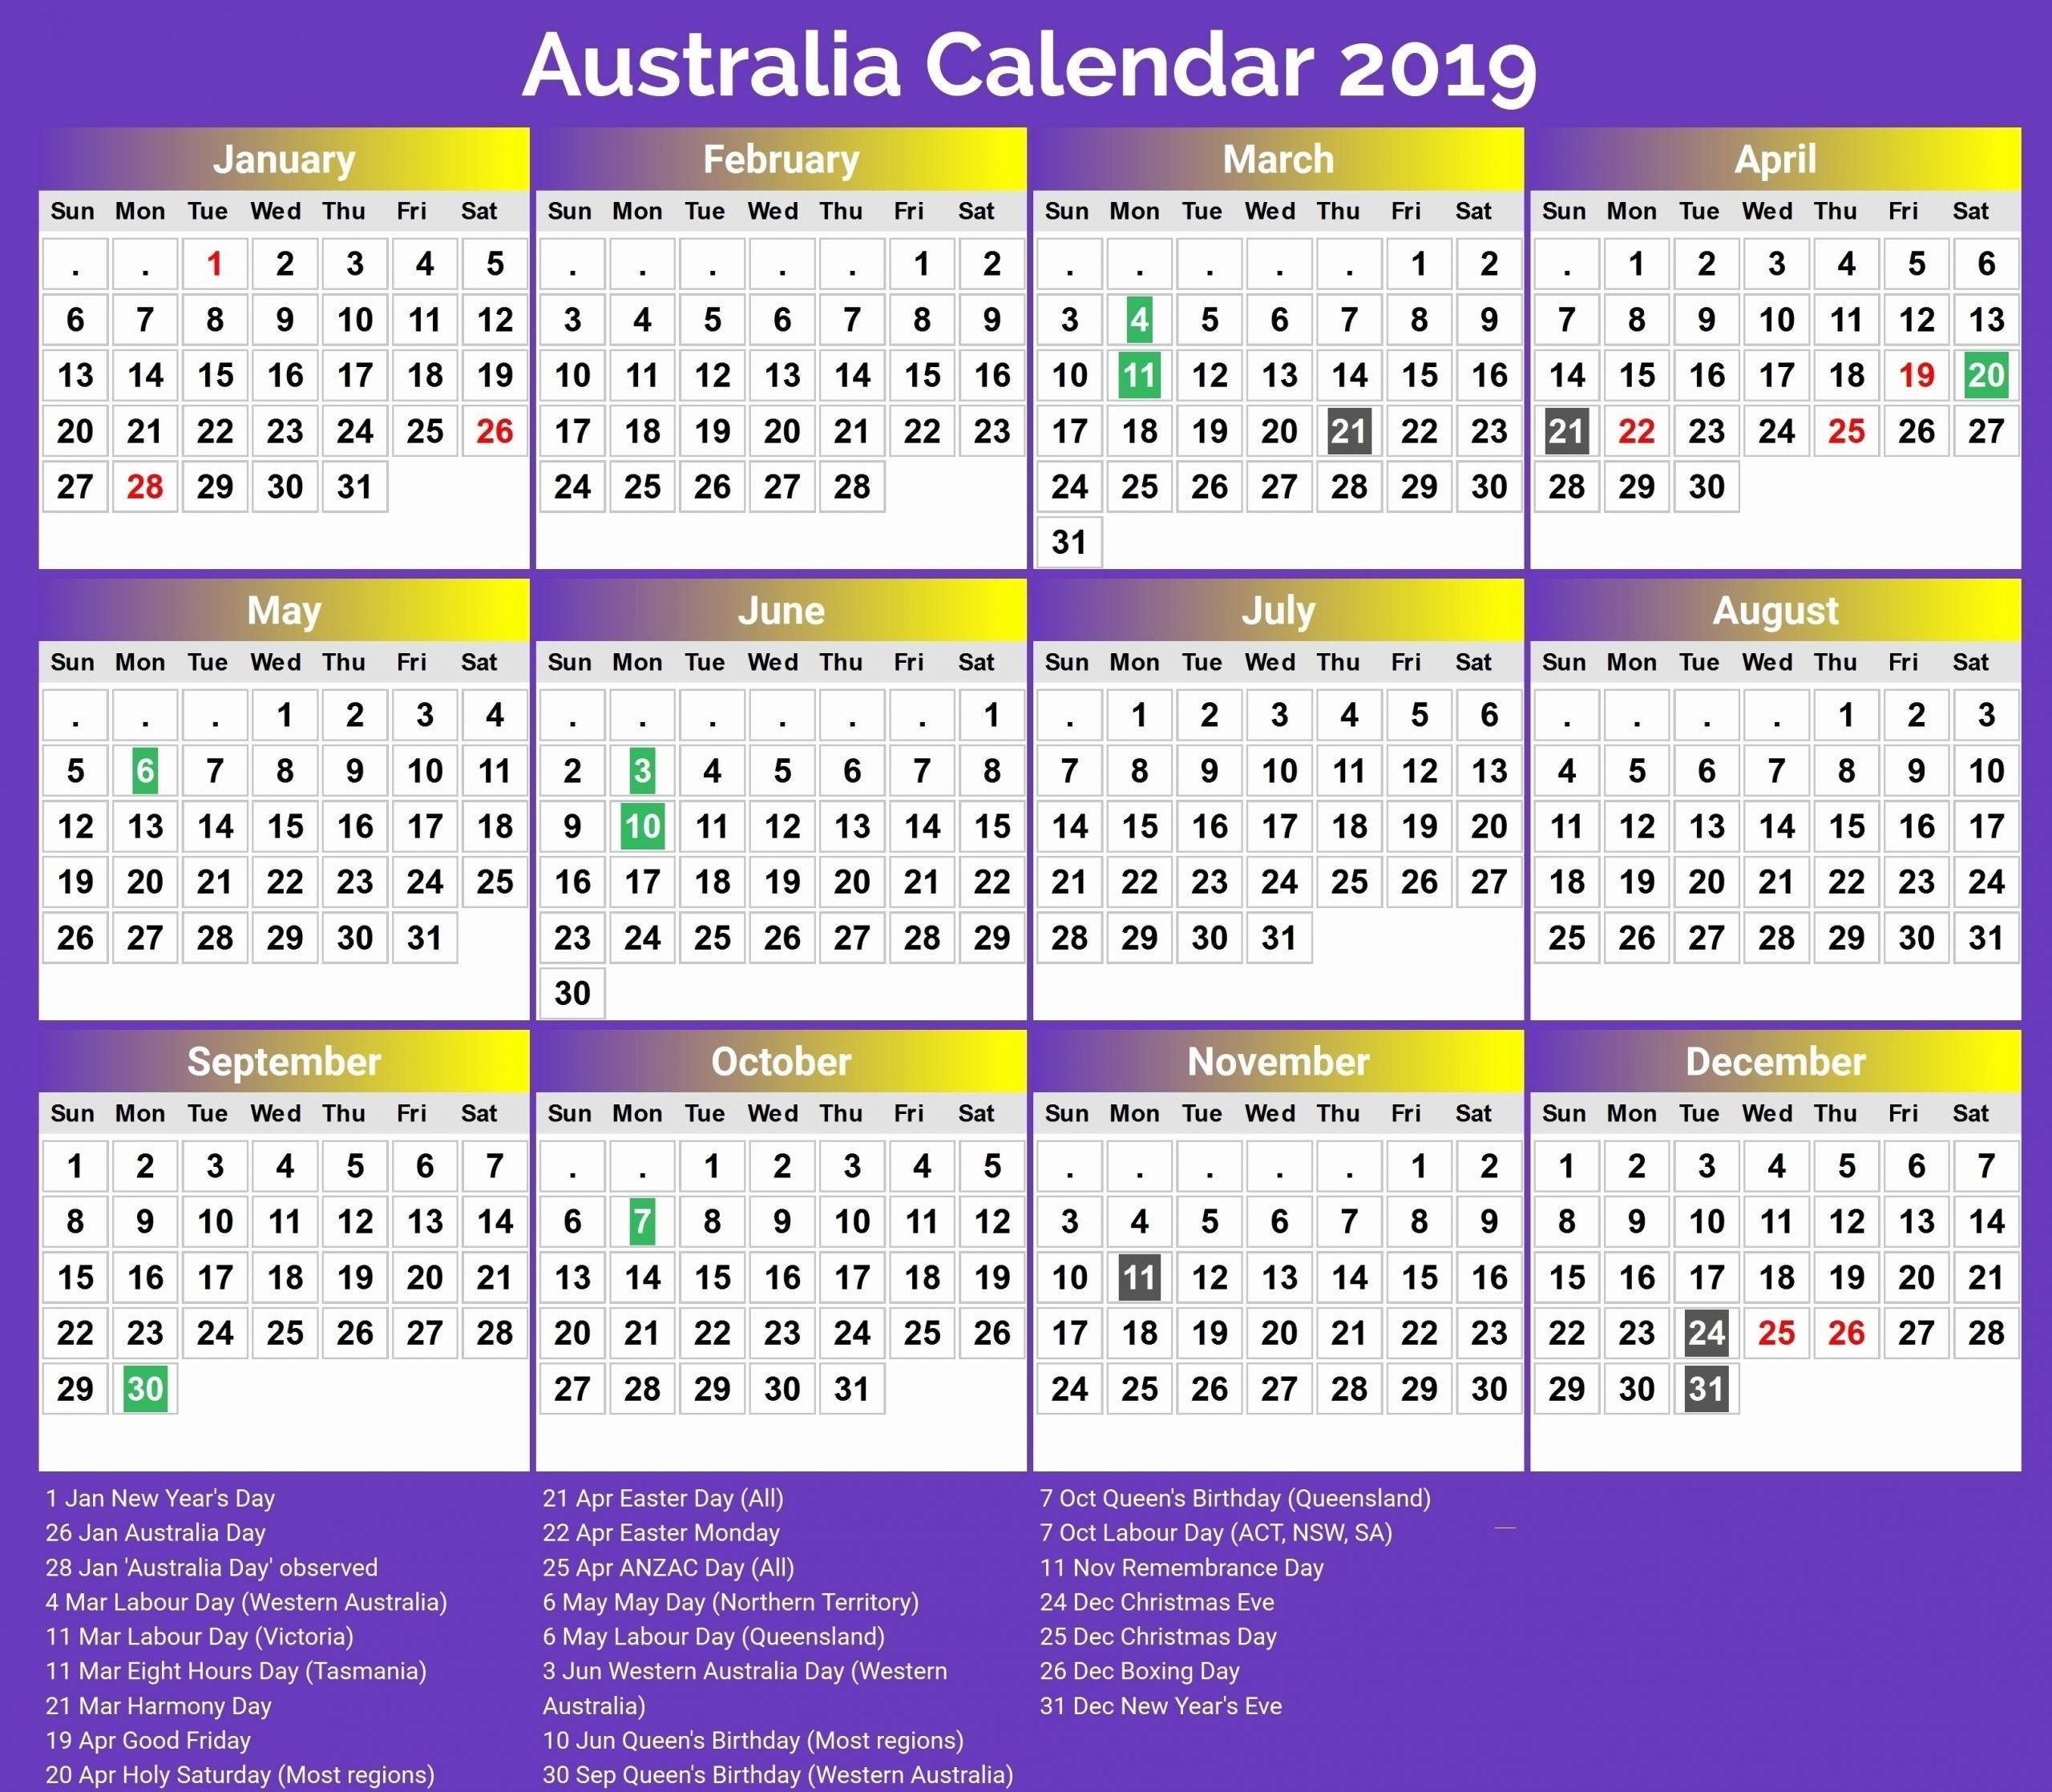 20+ Template Excel 2021 Calendar Qld - Free Download Printable Calendar Templates ️ inside Ucsb 2019 2021 Calendar